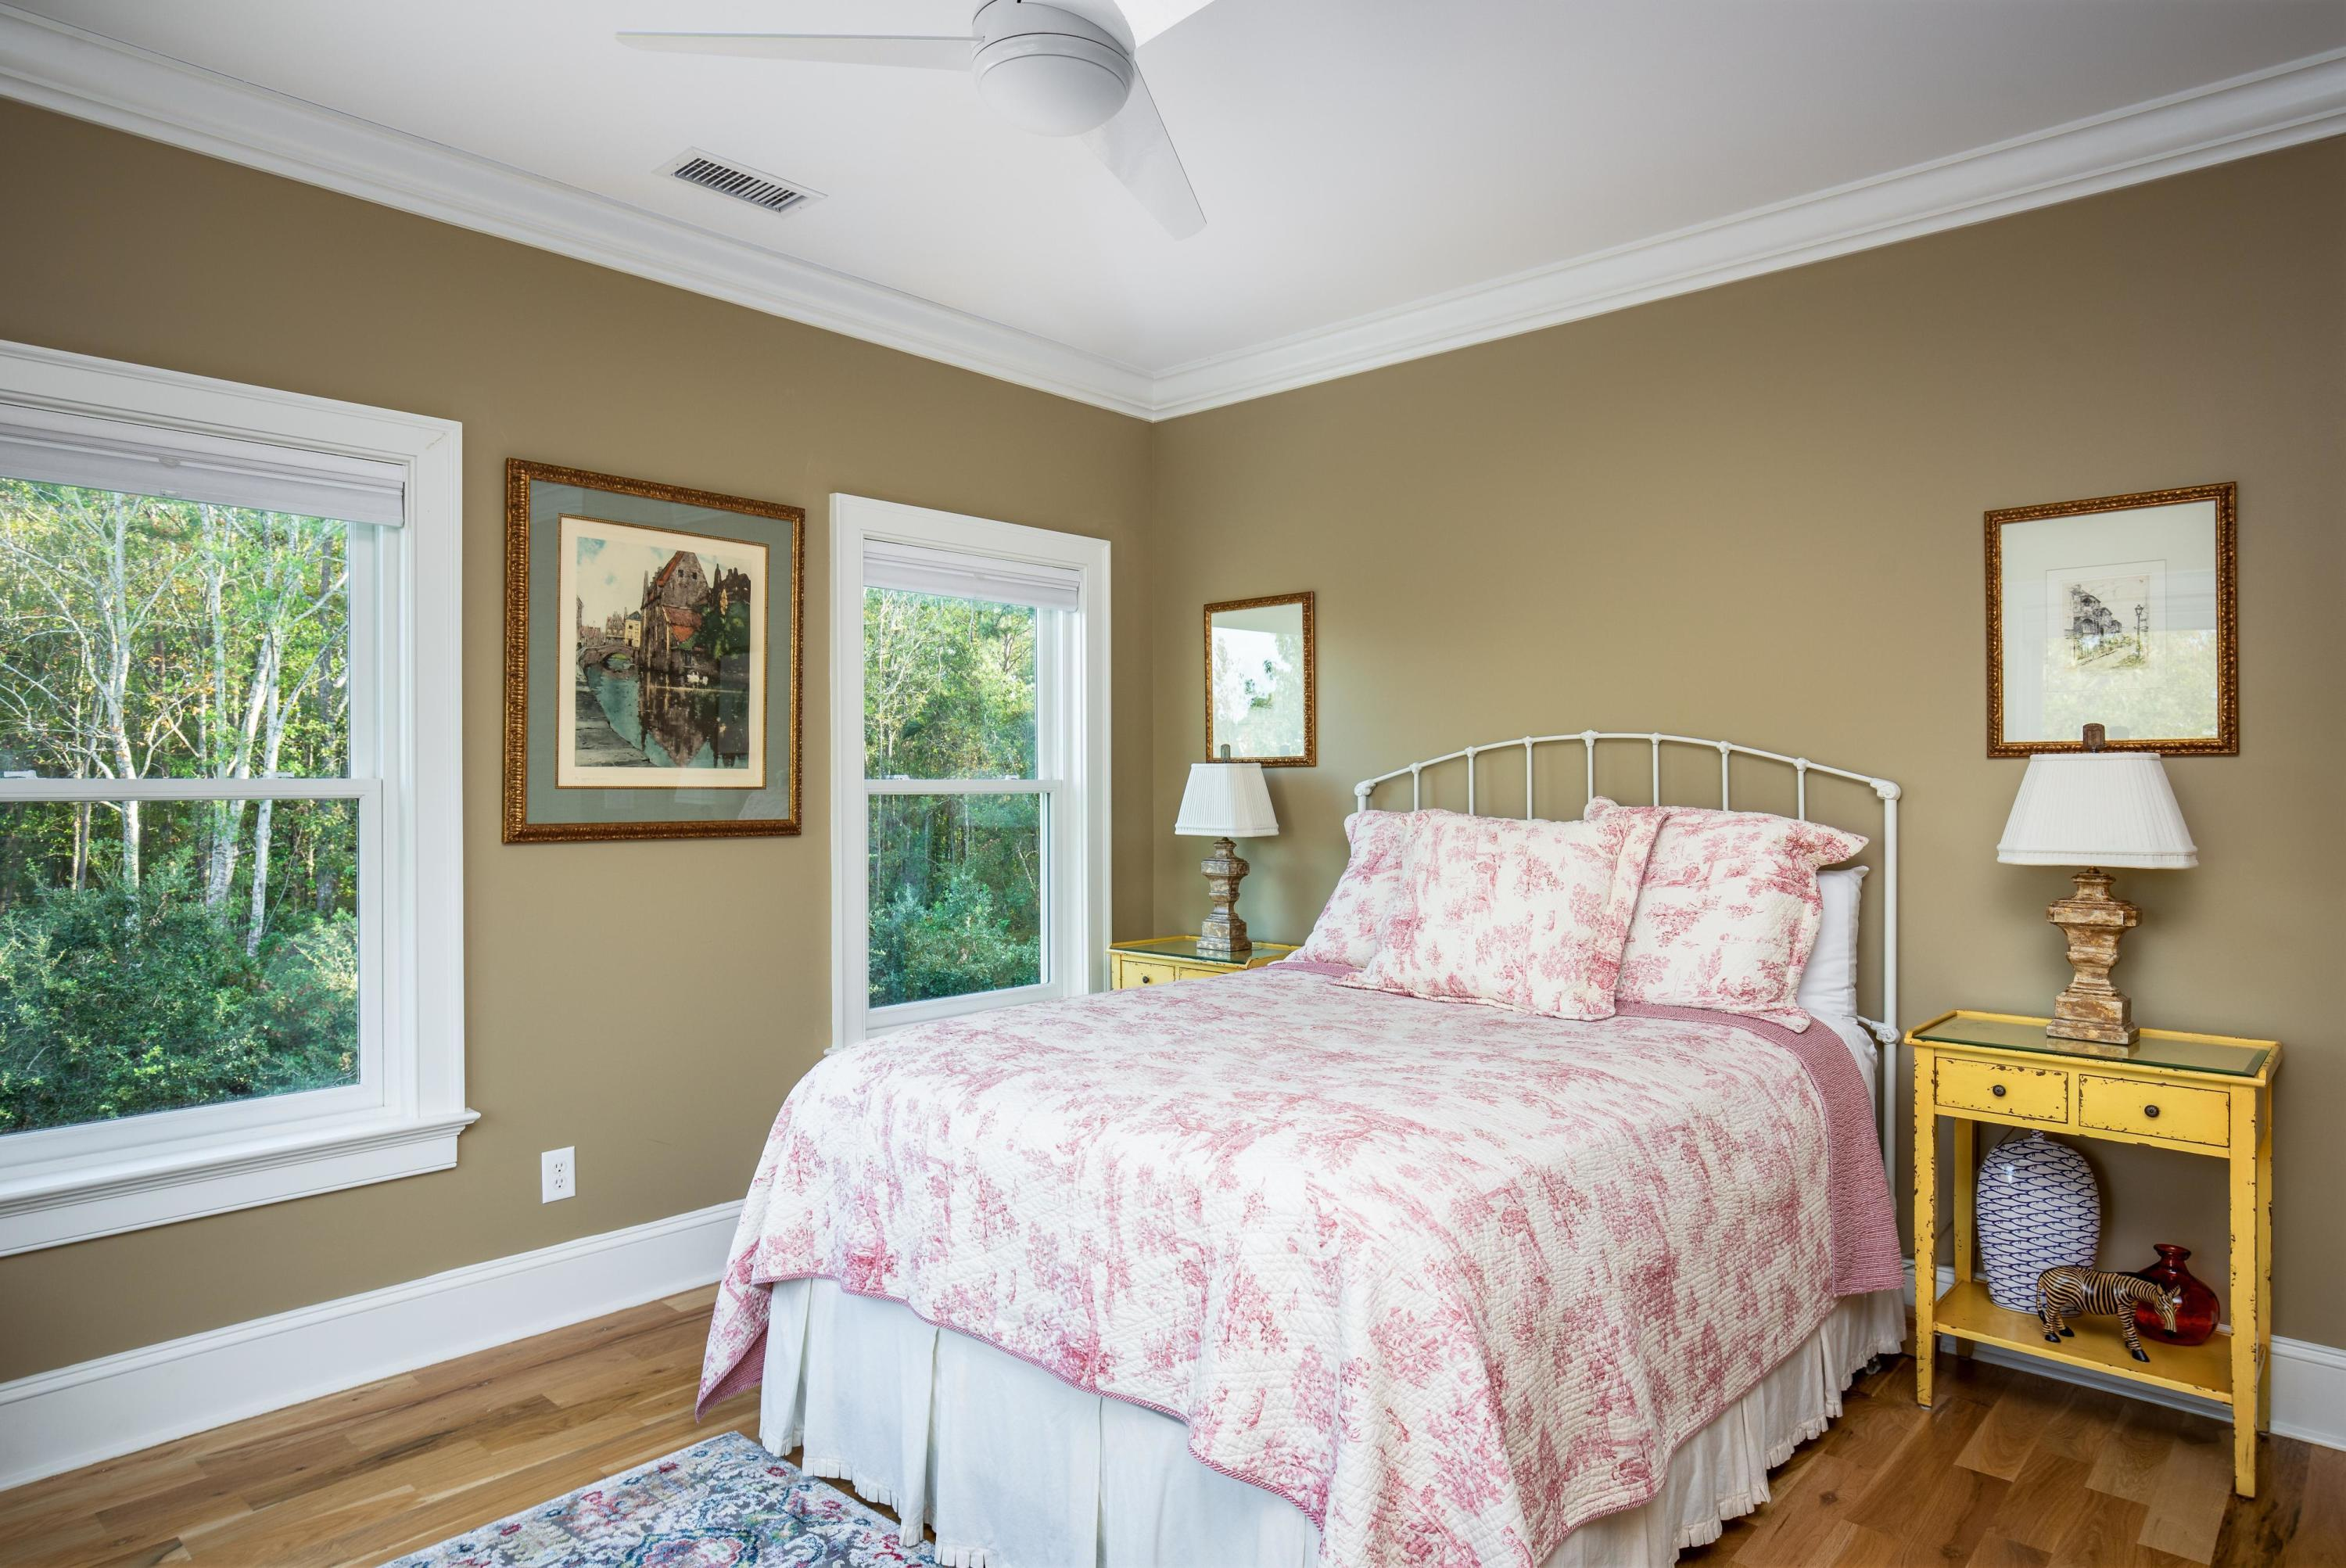 Rivertowne On The Wando Homes For Sale - 2212 Hartfords Bluff, Mount Pleasant, SC - 8